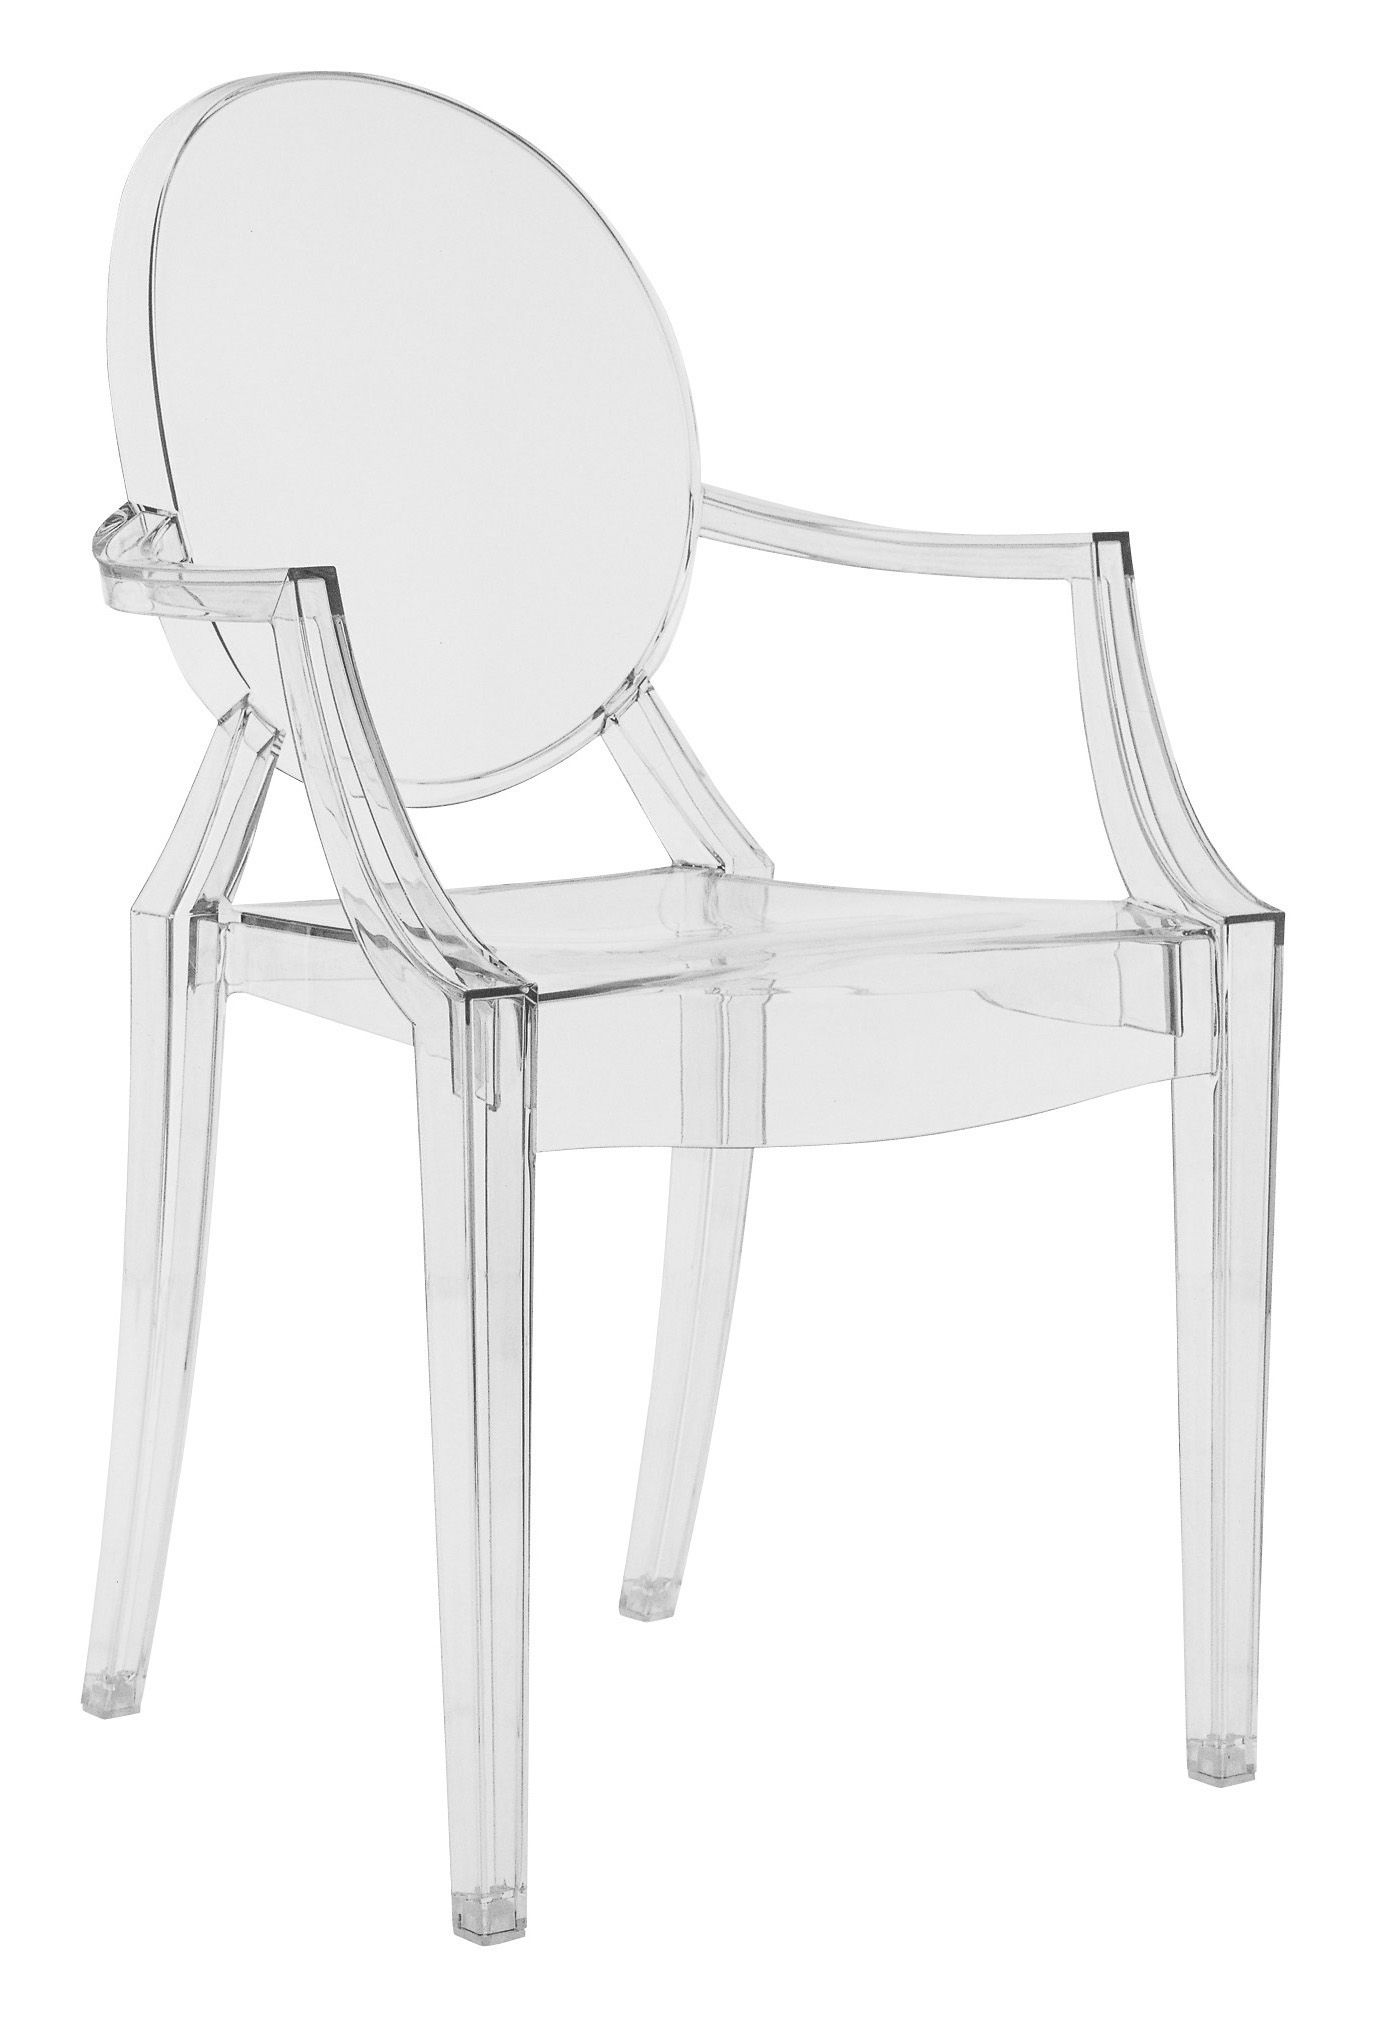 Chaise Philippe Starck Fauteuil Empilable Louis Ghost Transparent Polycarbonate Kartell